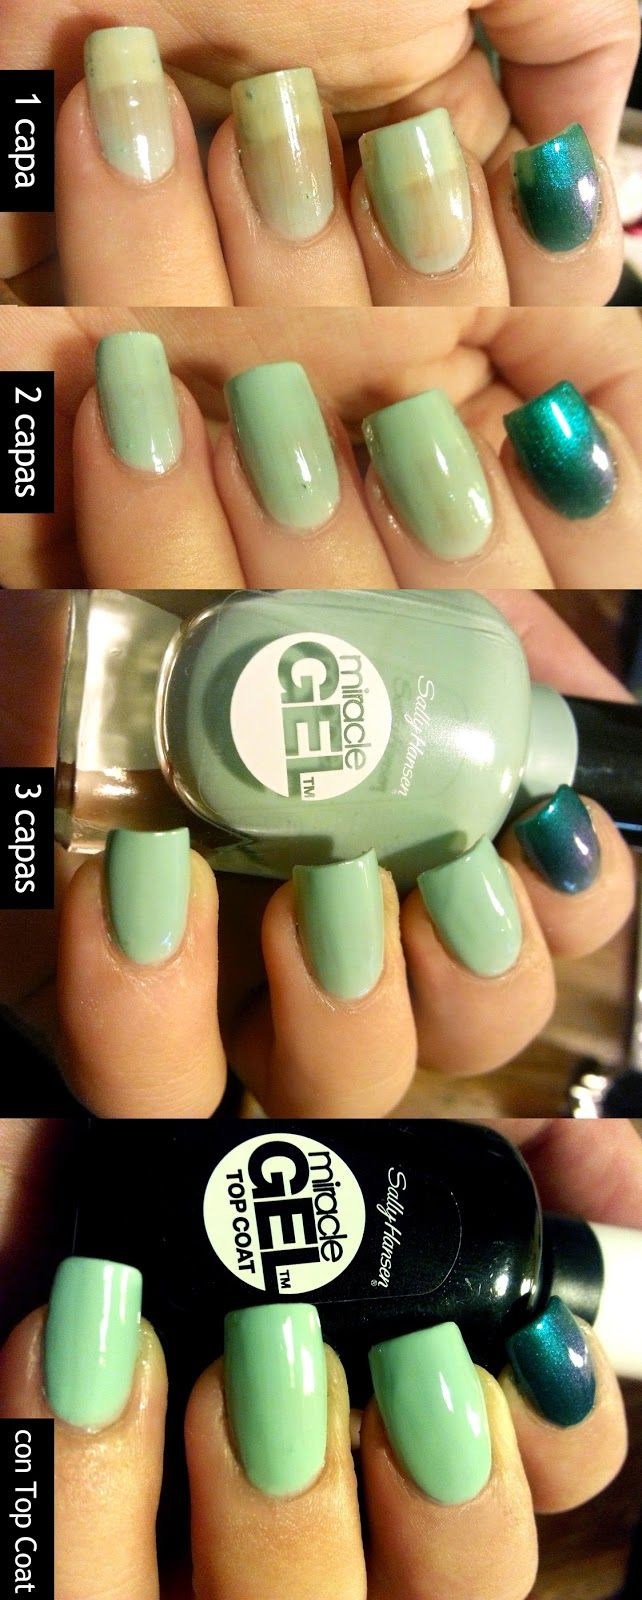 Sally Hansen Miracle Gel put to the test! Does it really last 14 ...